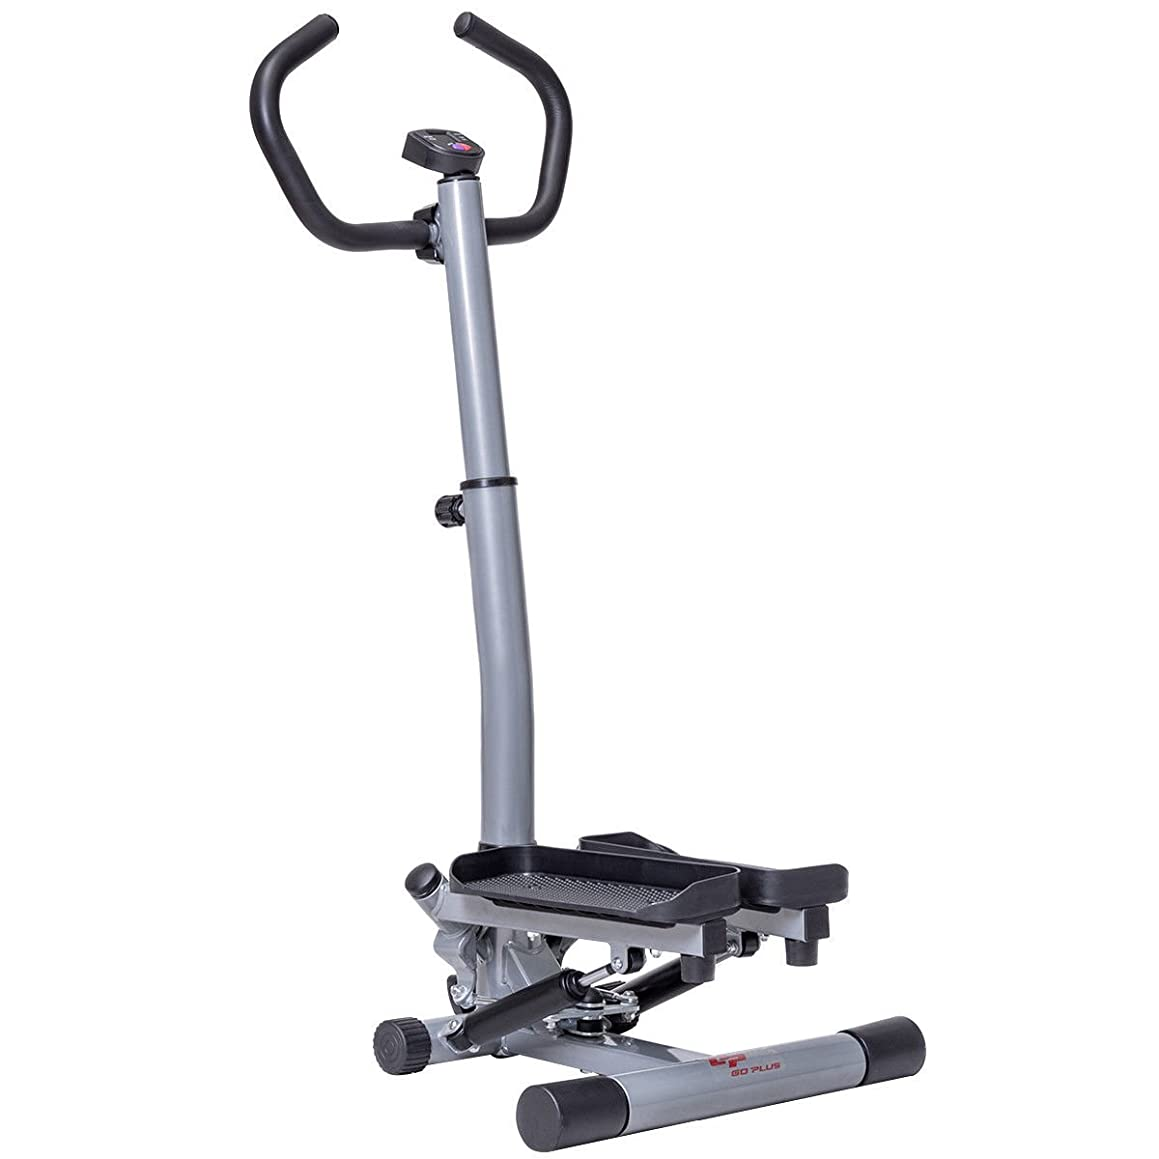 Goplus Stair Stepper Twister 2 in 1 Step Machine Fitness Exercise Workout with Handle Bar and LCD Display Cardio Trainer Stair Climber